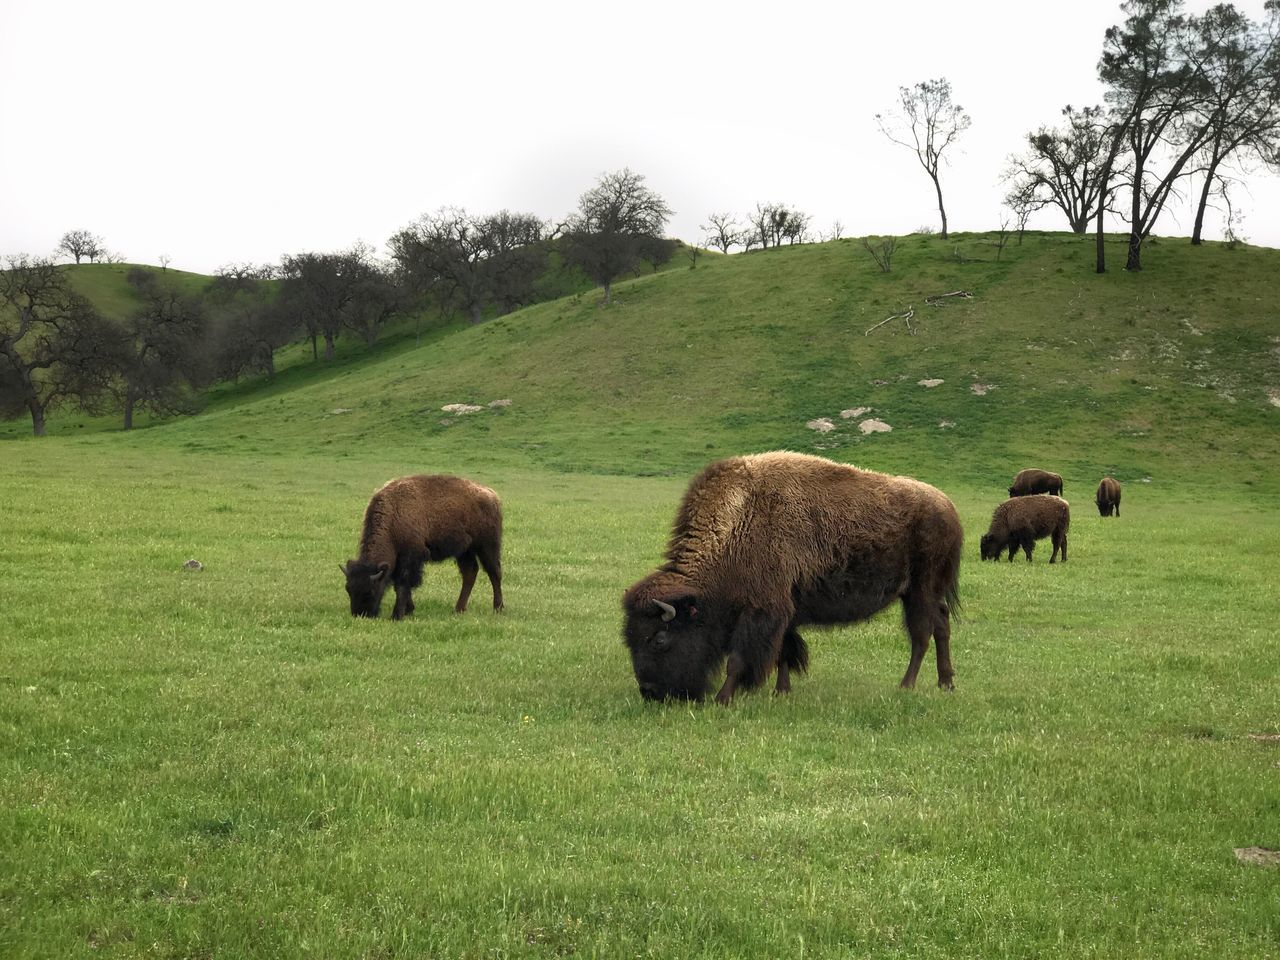 grass, animal themes, field, nature, no people, mammal, grazing, landscape, tree, outdoors, day, clear sky, scenics, full length, domestic animals, beauty in nature, american bison, sky